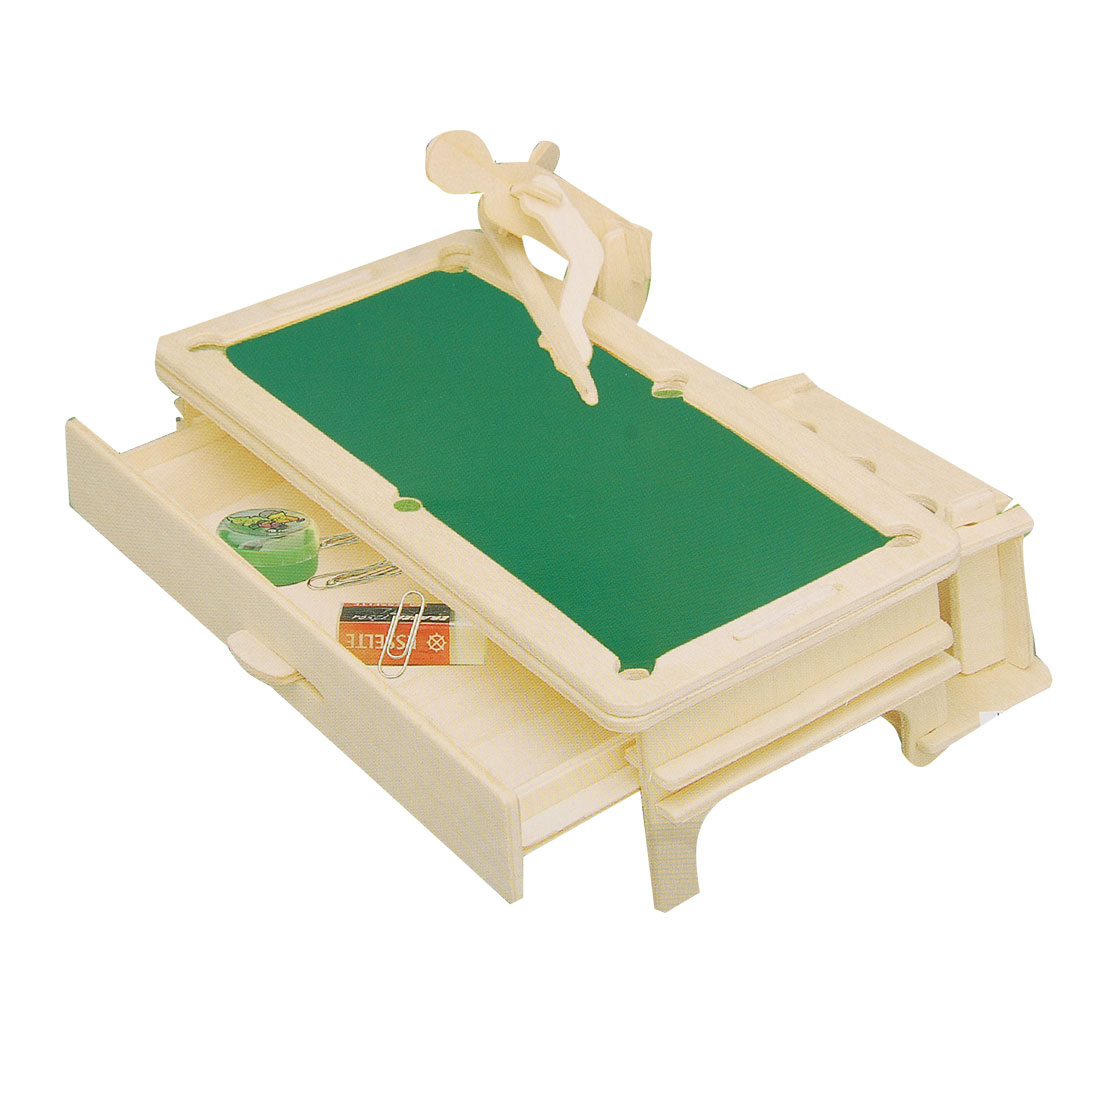 Wooden Pen Holder Snooker Pool Design Construction Kit Woodcraft Puzzle Toy